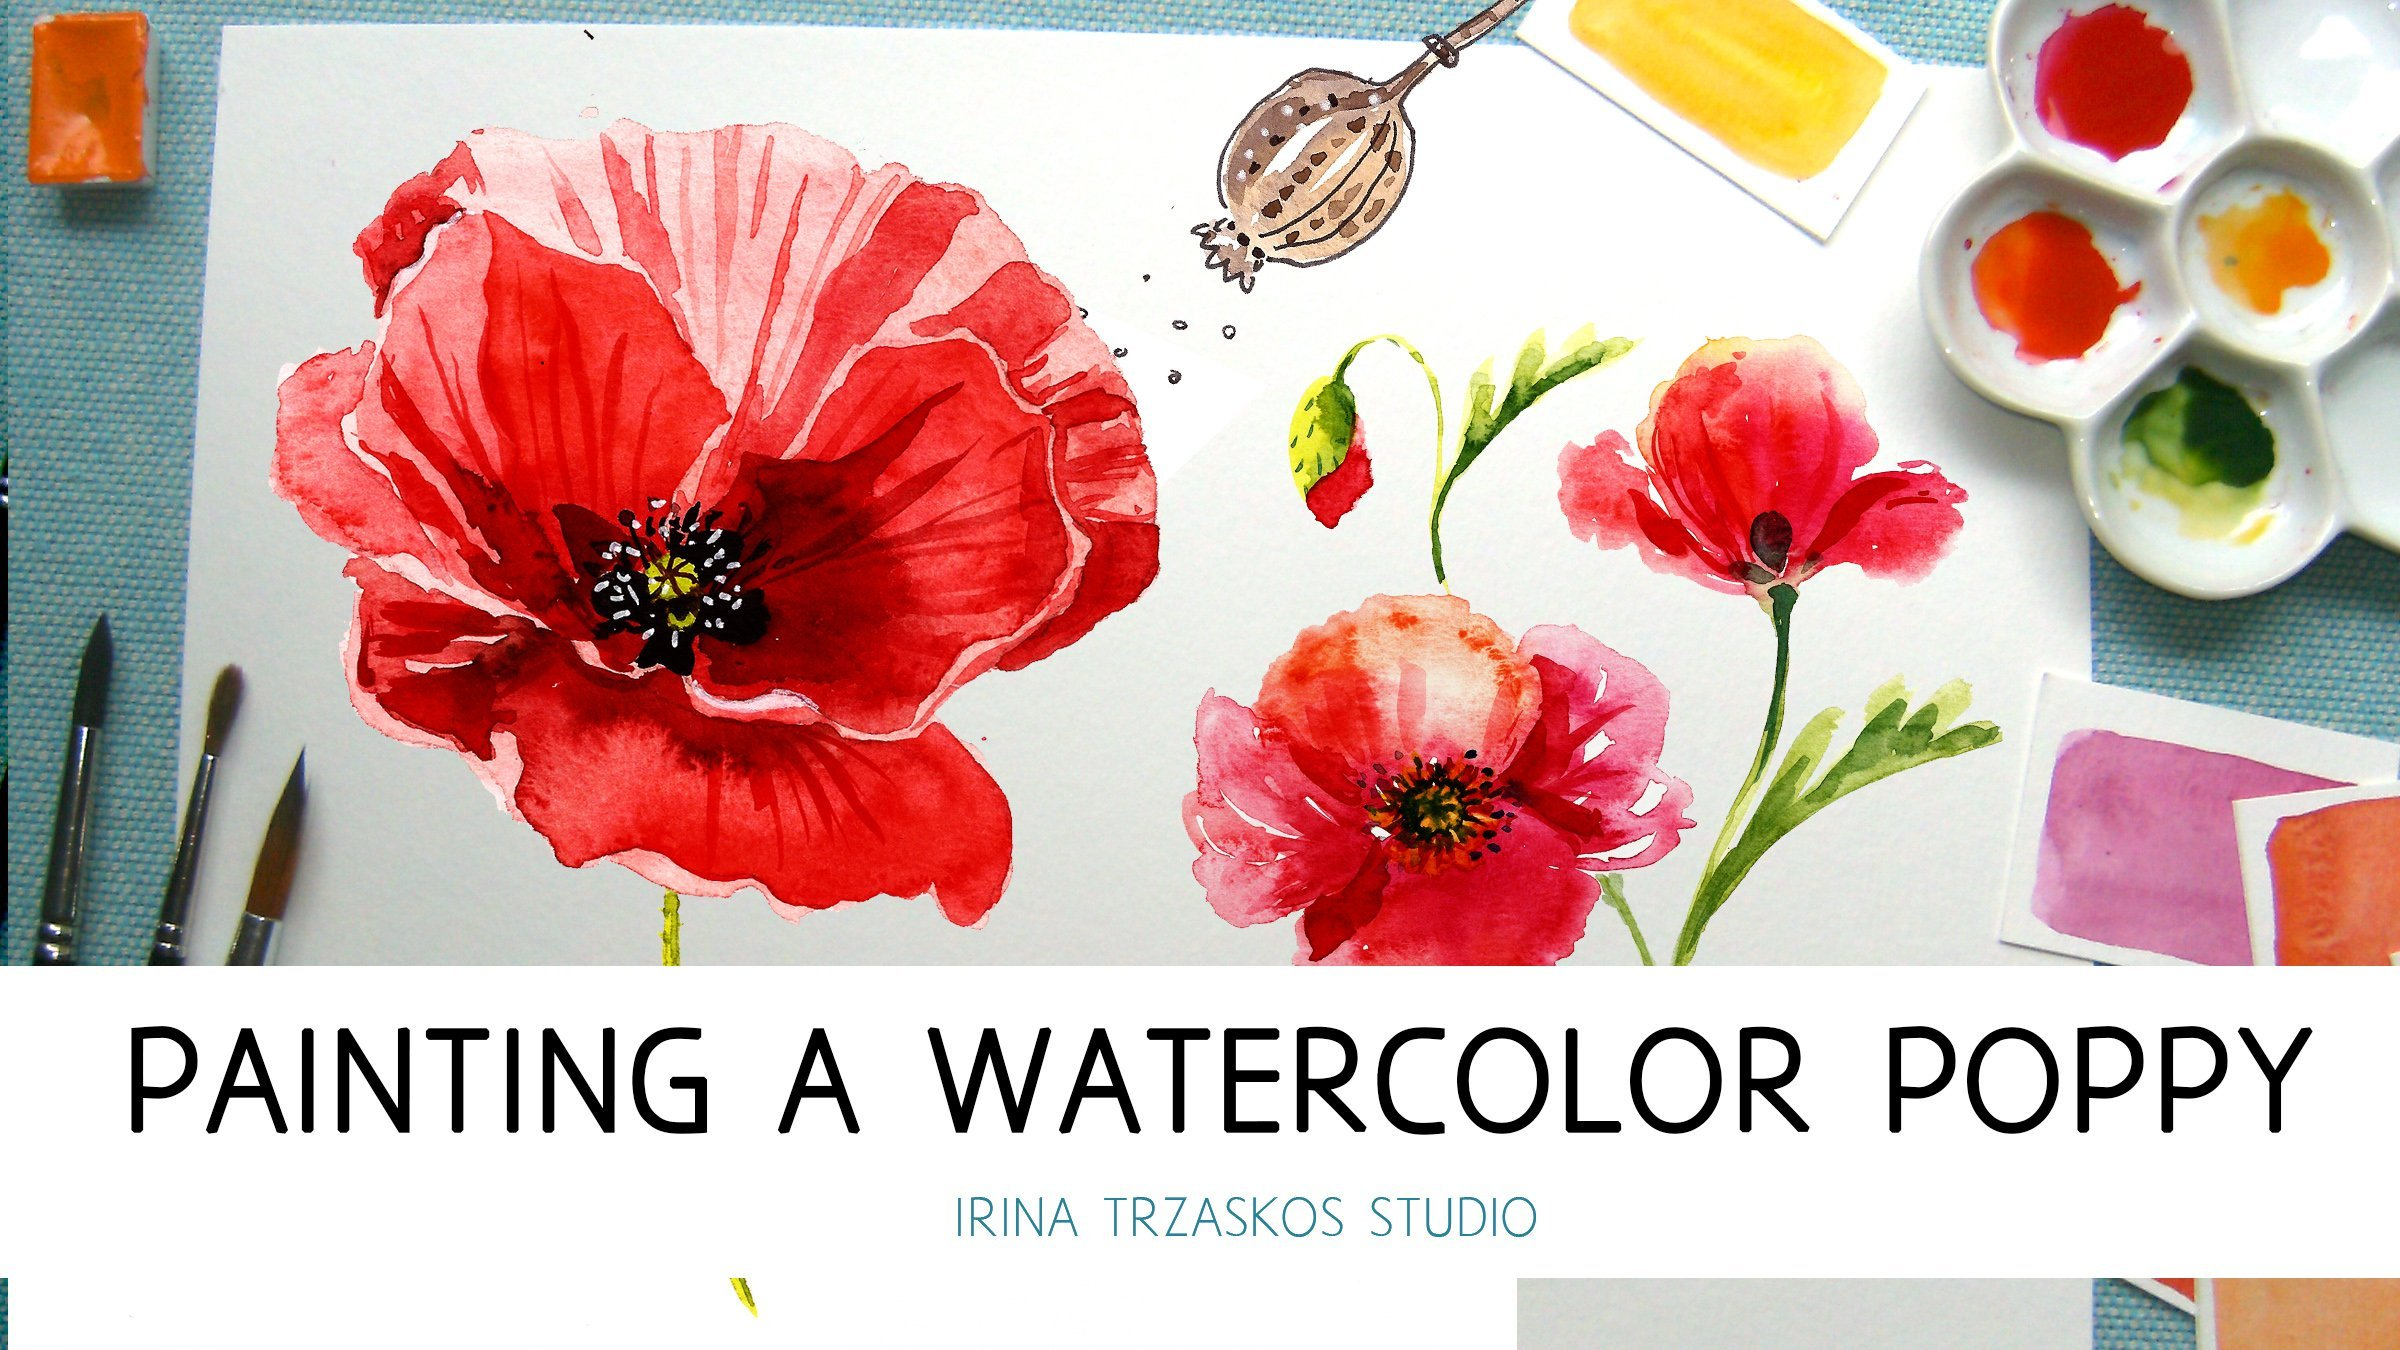 Painting a watercolor poppy explore 3 watercolor styles irina painting a watercolor poppy explore 3 watercolor styles irina trzaskos skillshare mightylinksfo